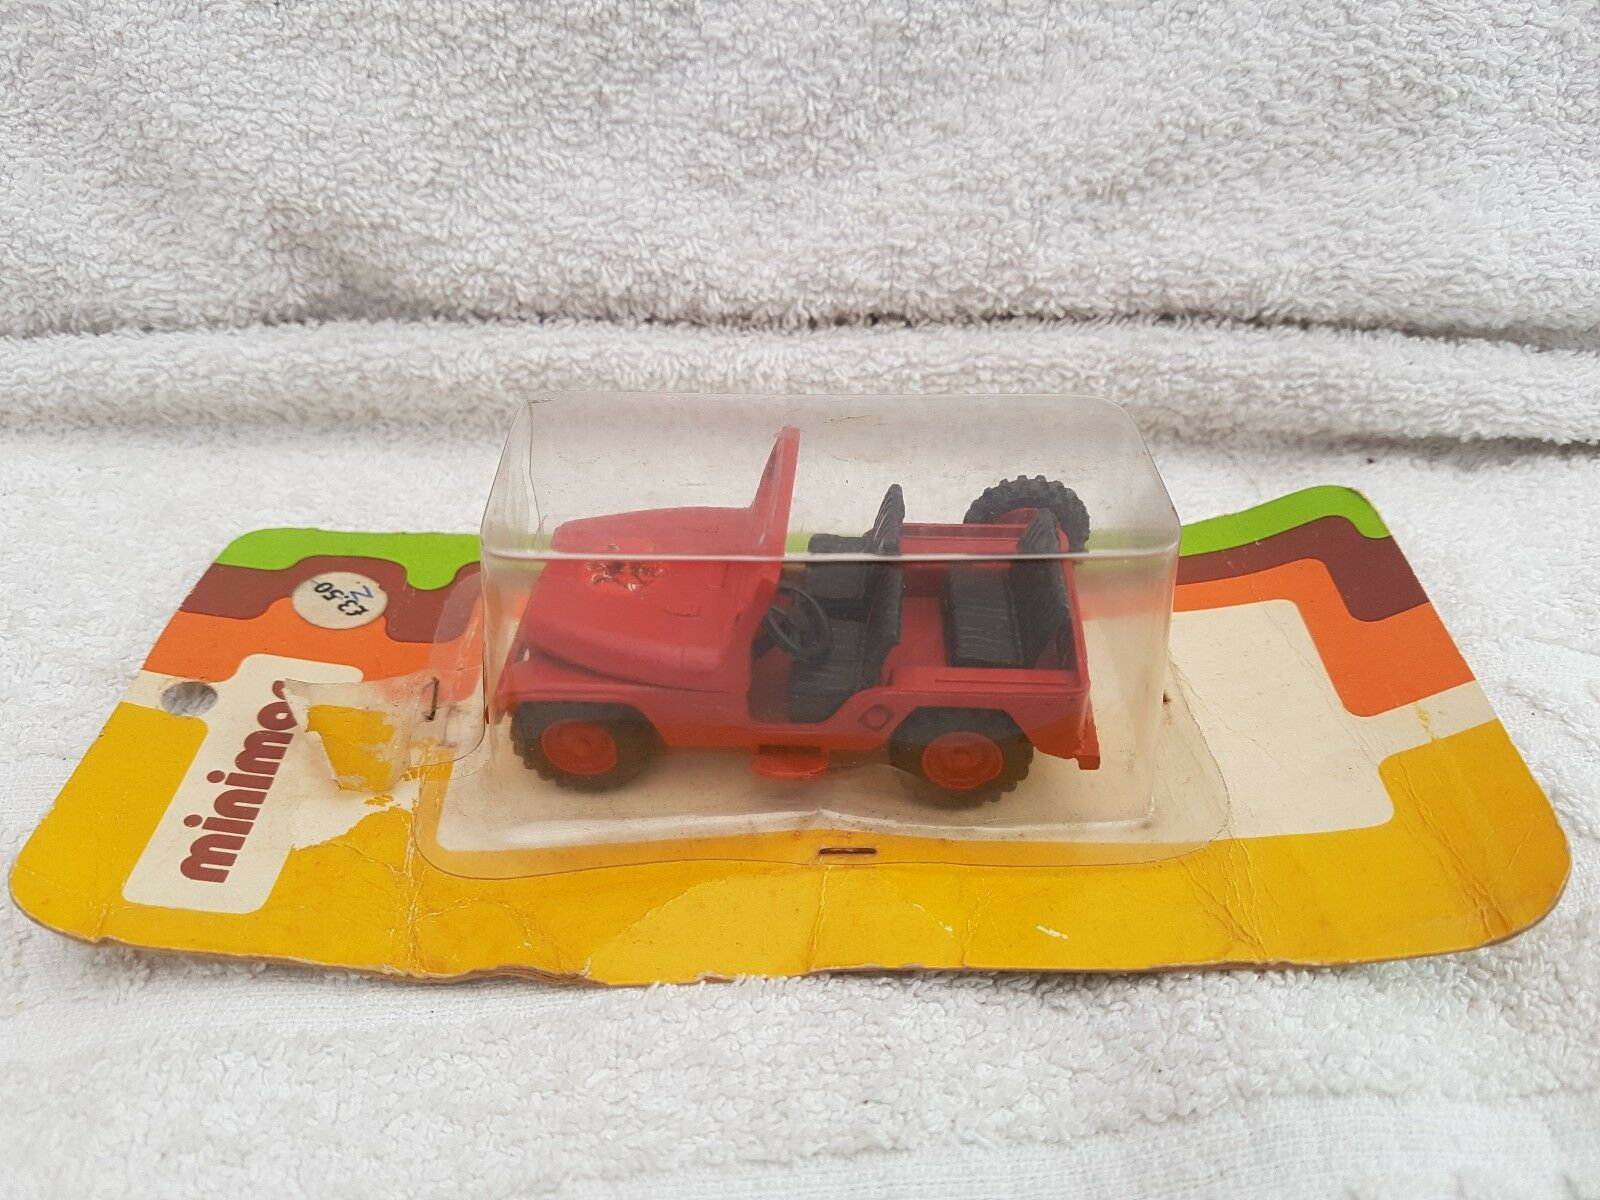 Minimac brazil ford fire jeep in very good condition